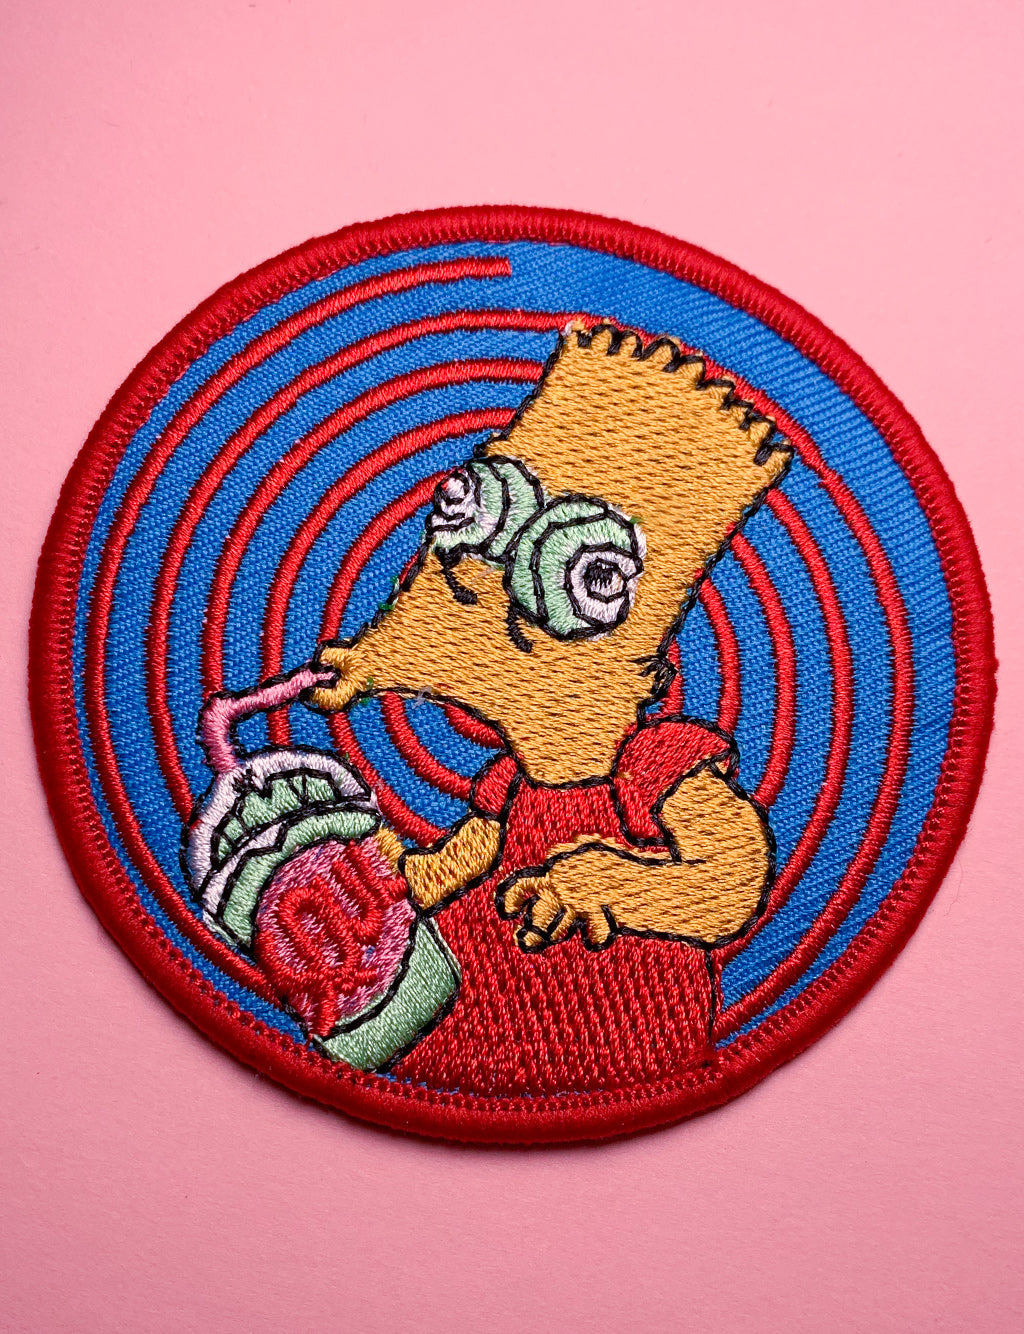 BART SQUISHEE PATCH